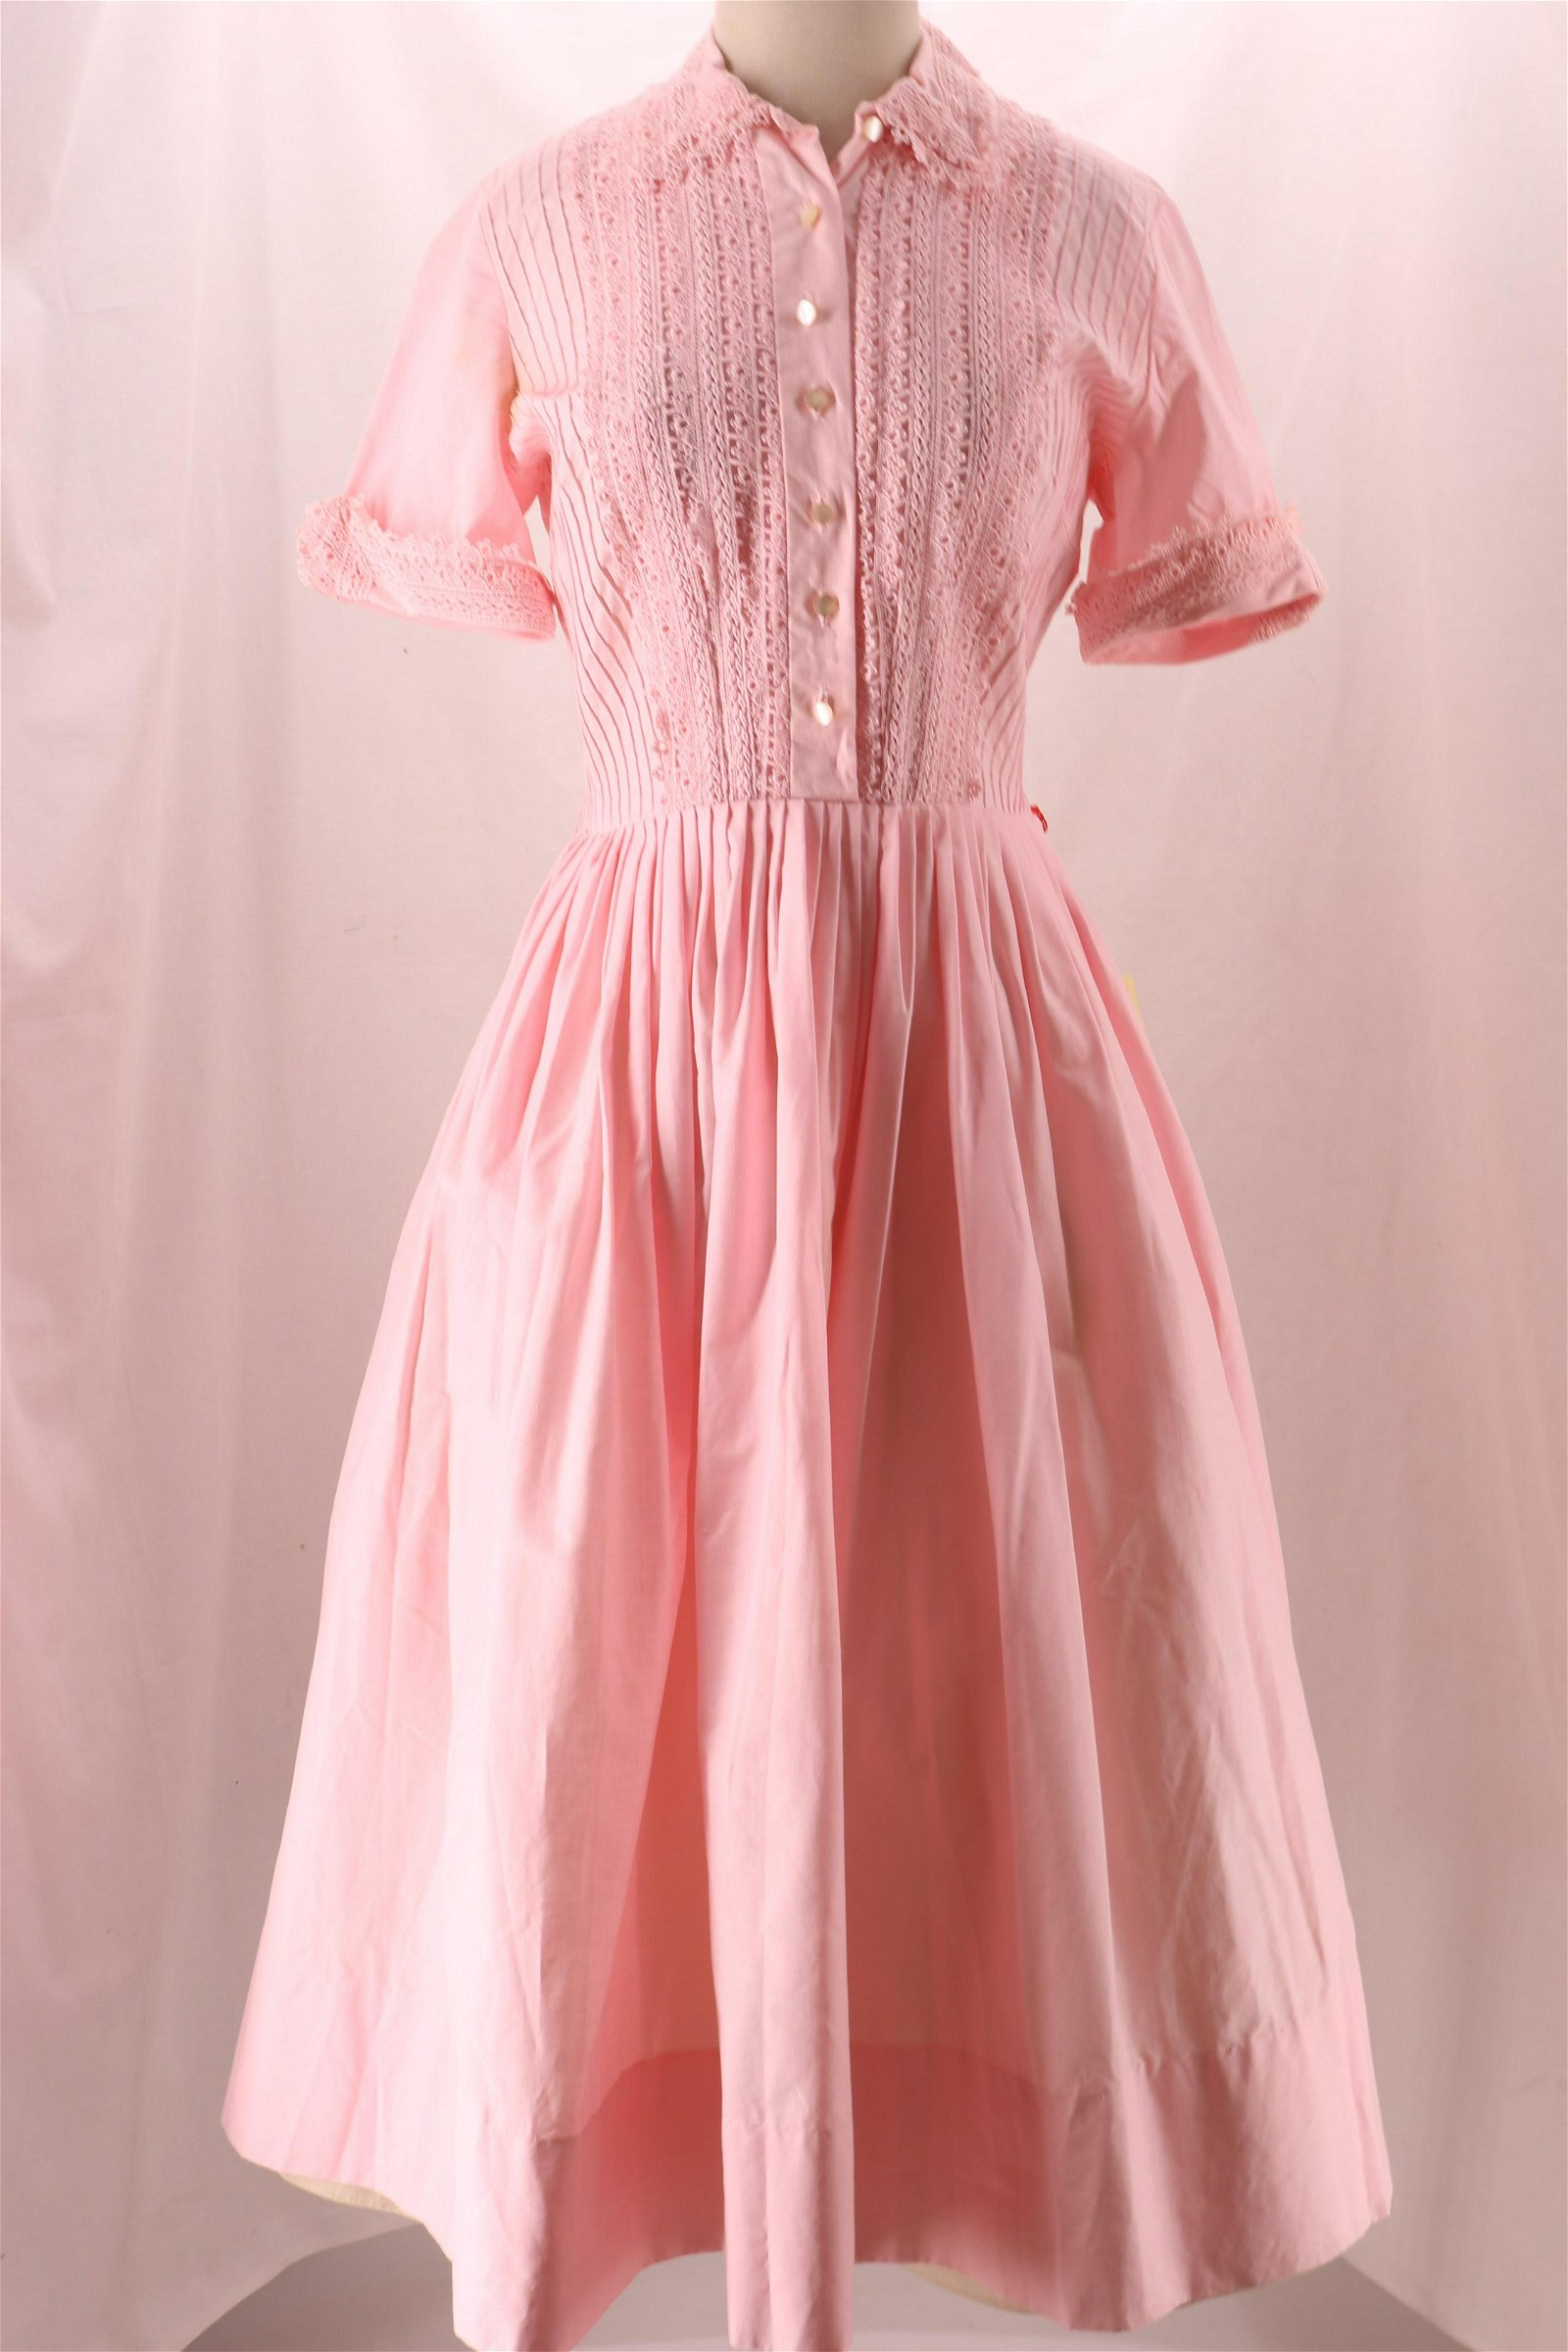 Vintage Henry Rosenfeld Cotton Pink Dress New With